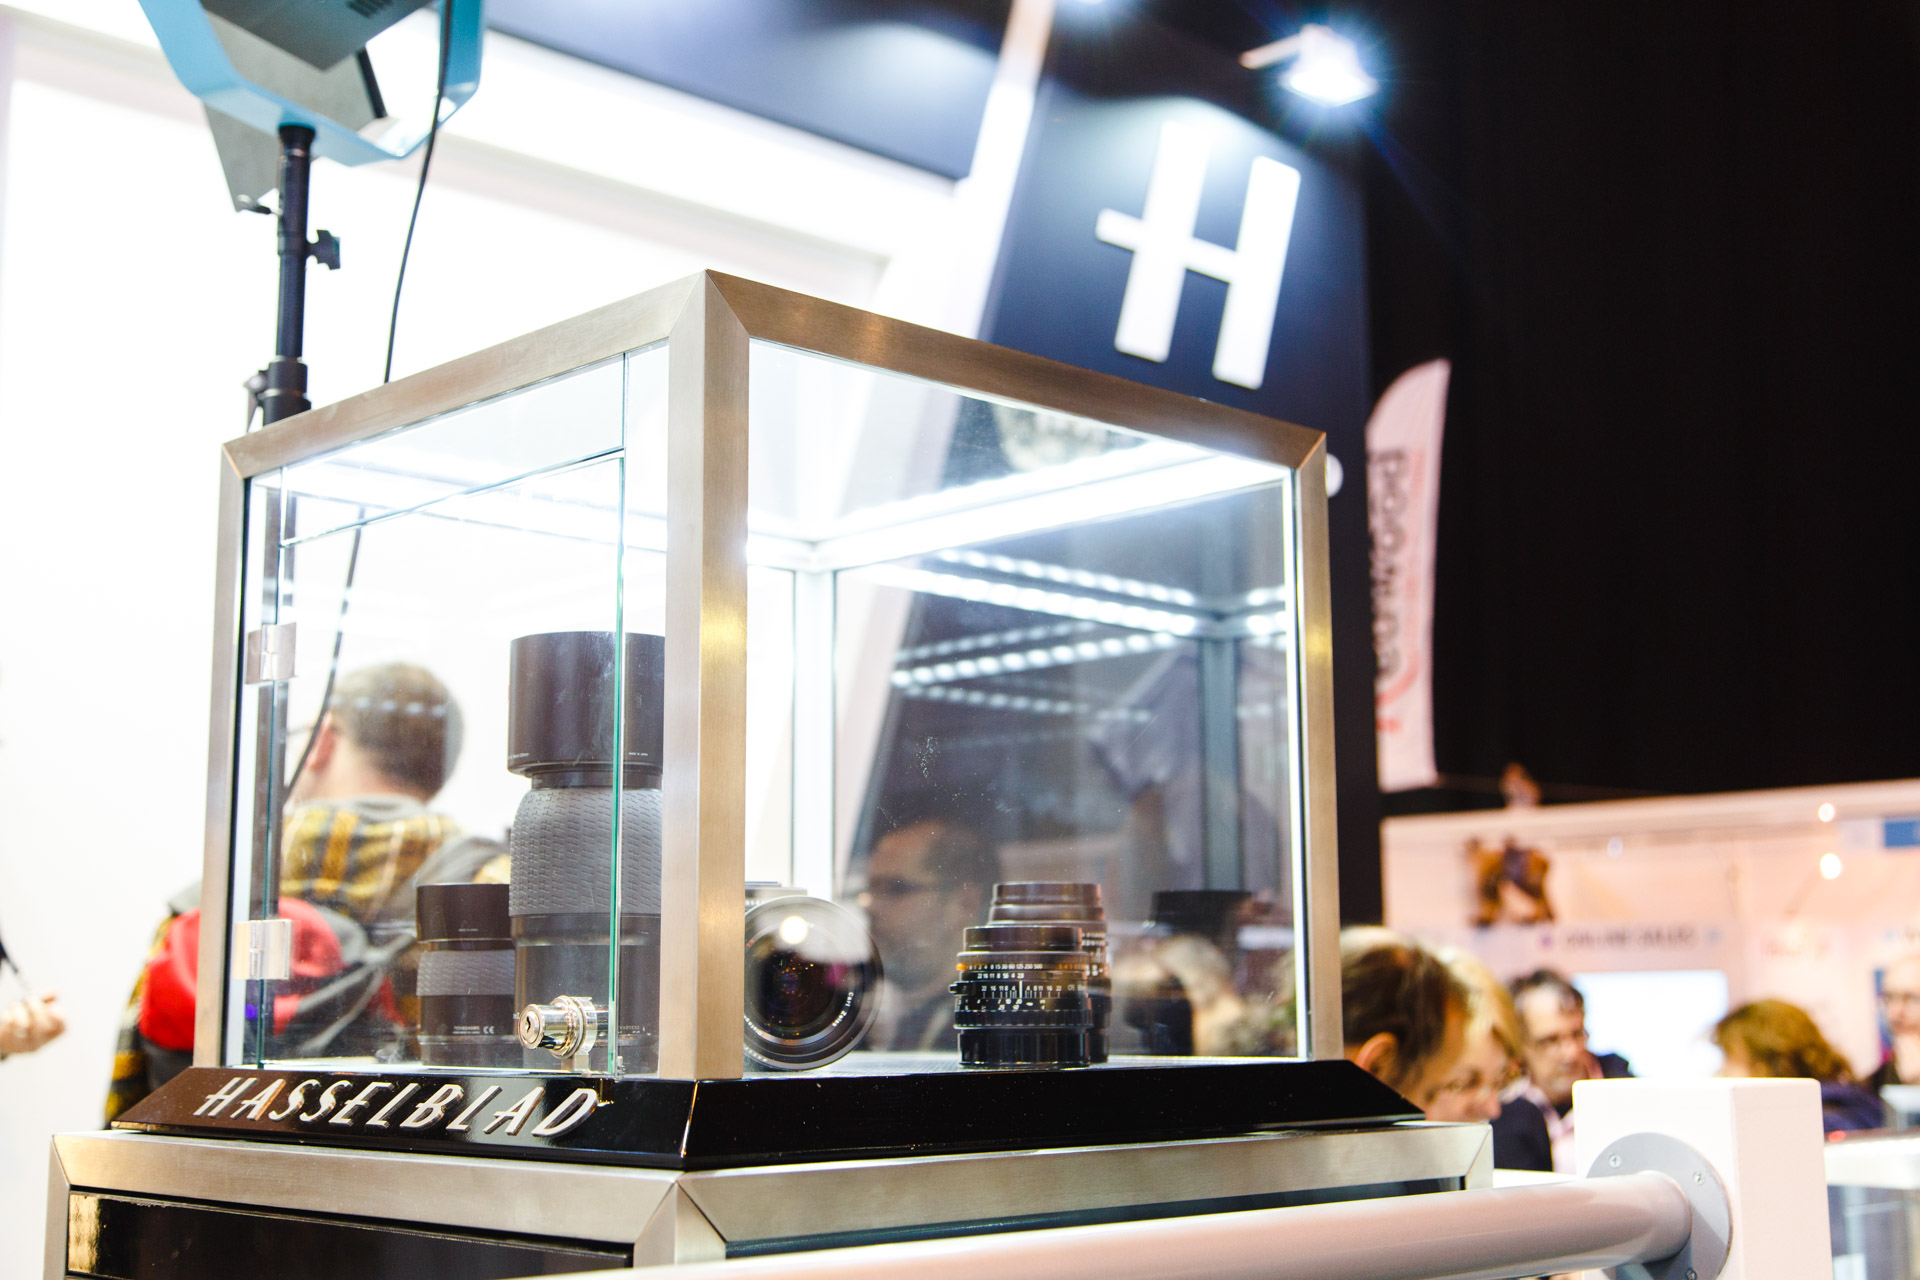 Hasselblad's stand.